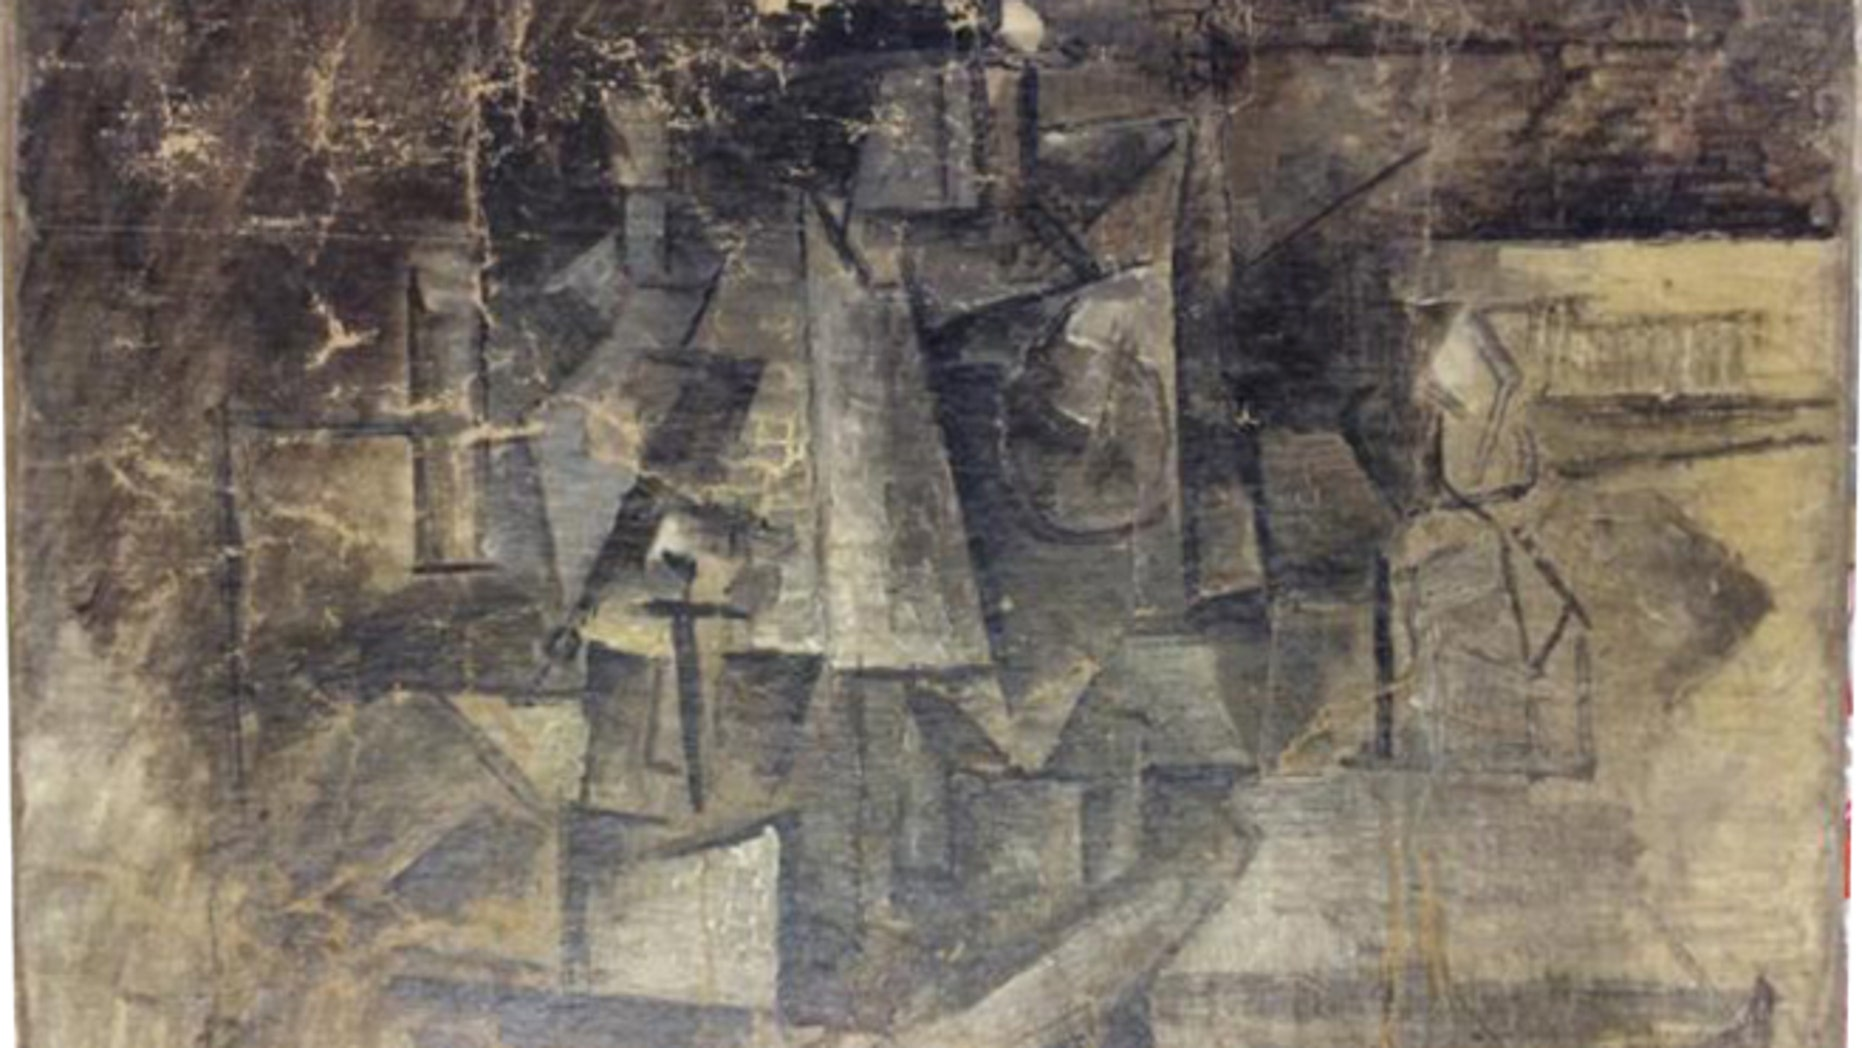 "This undated photo provided by the United States Department of Justice, shows a cubist painting entitled The Hairdresser by Pablo Picasso. Authorities say the painting worth millions of dollars was stolen in France and smuggled into the U.S. by someone who falsely labeled it as an ""art craft"" worth about $37 when it was shipped. U.S. Attorney for the Eastern District of New York Loretta Lynch filed a civil forfeiture complaint Thursday, Feb. 26, 2015, over the  painting. (AP Photo/U.S Department of Justice)"